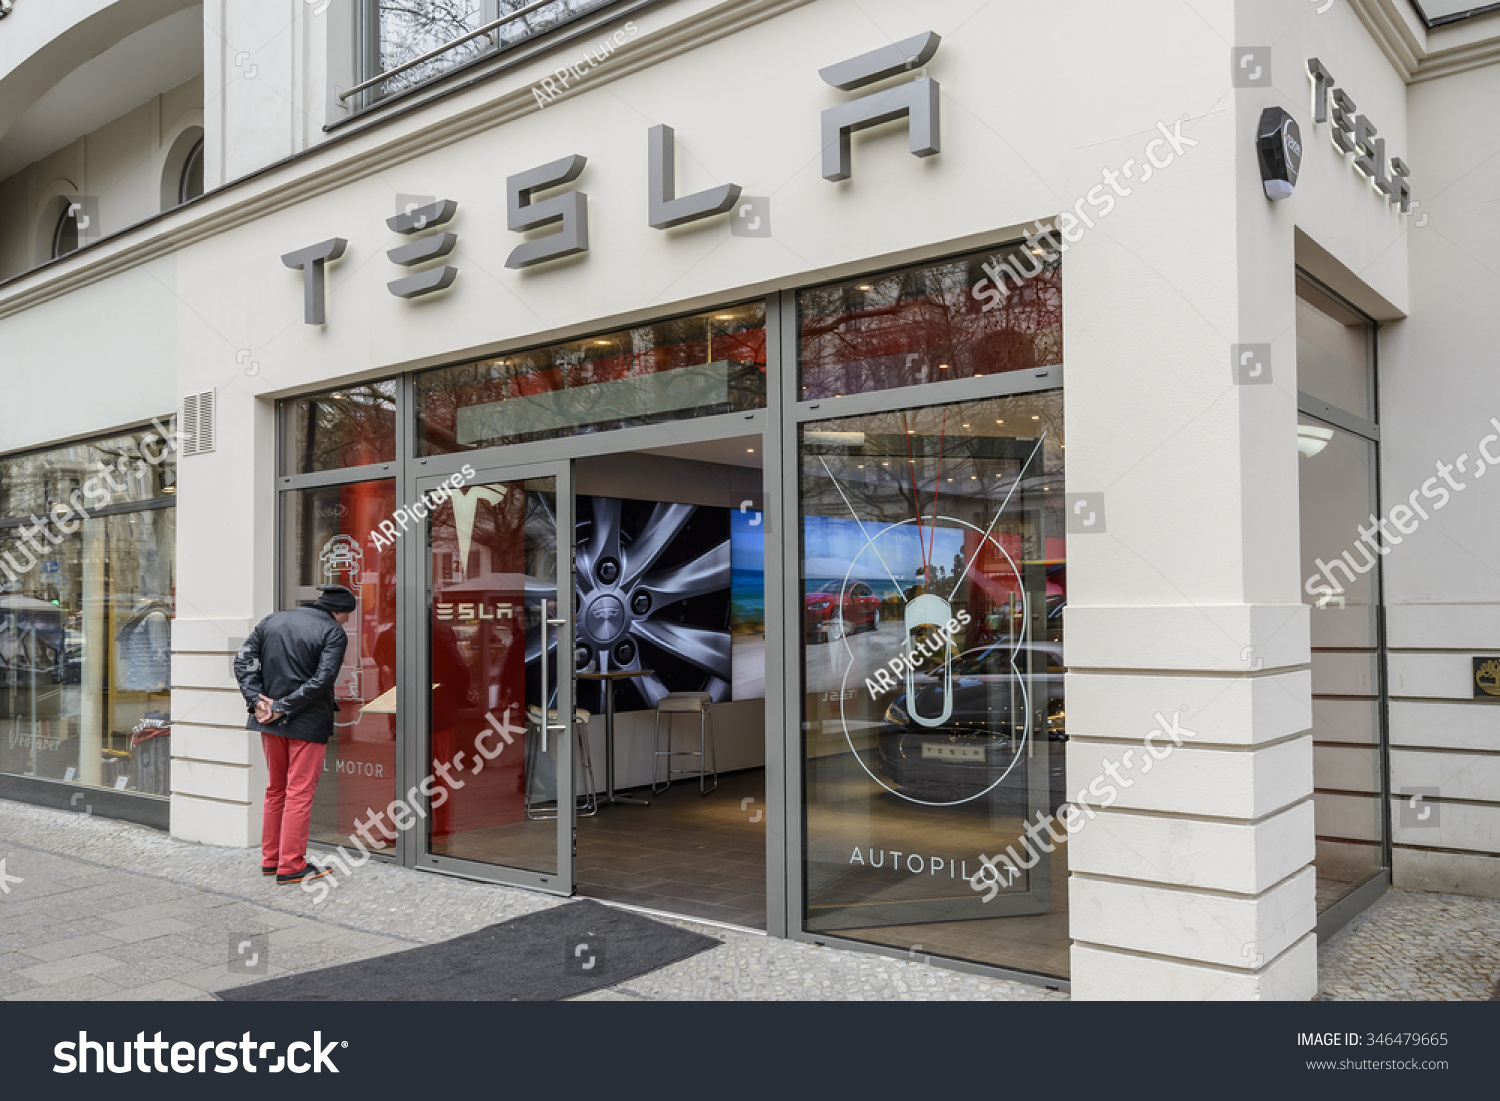 Berlin april 14 entrance tesla store stock photo 346479665 ...